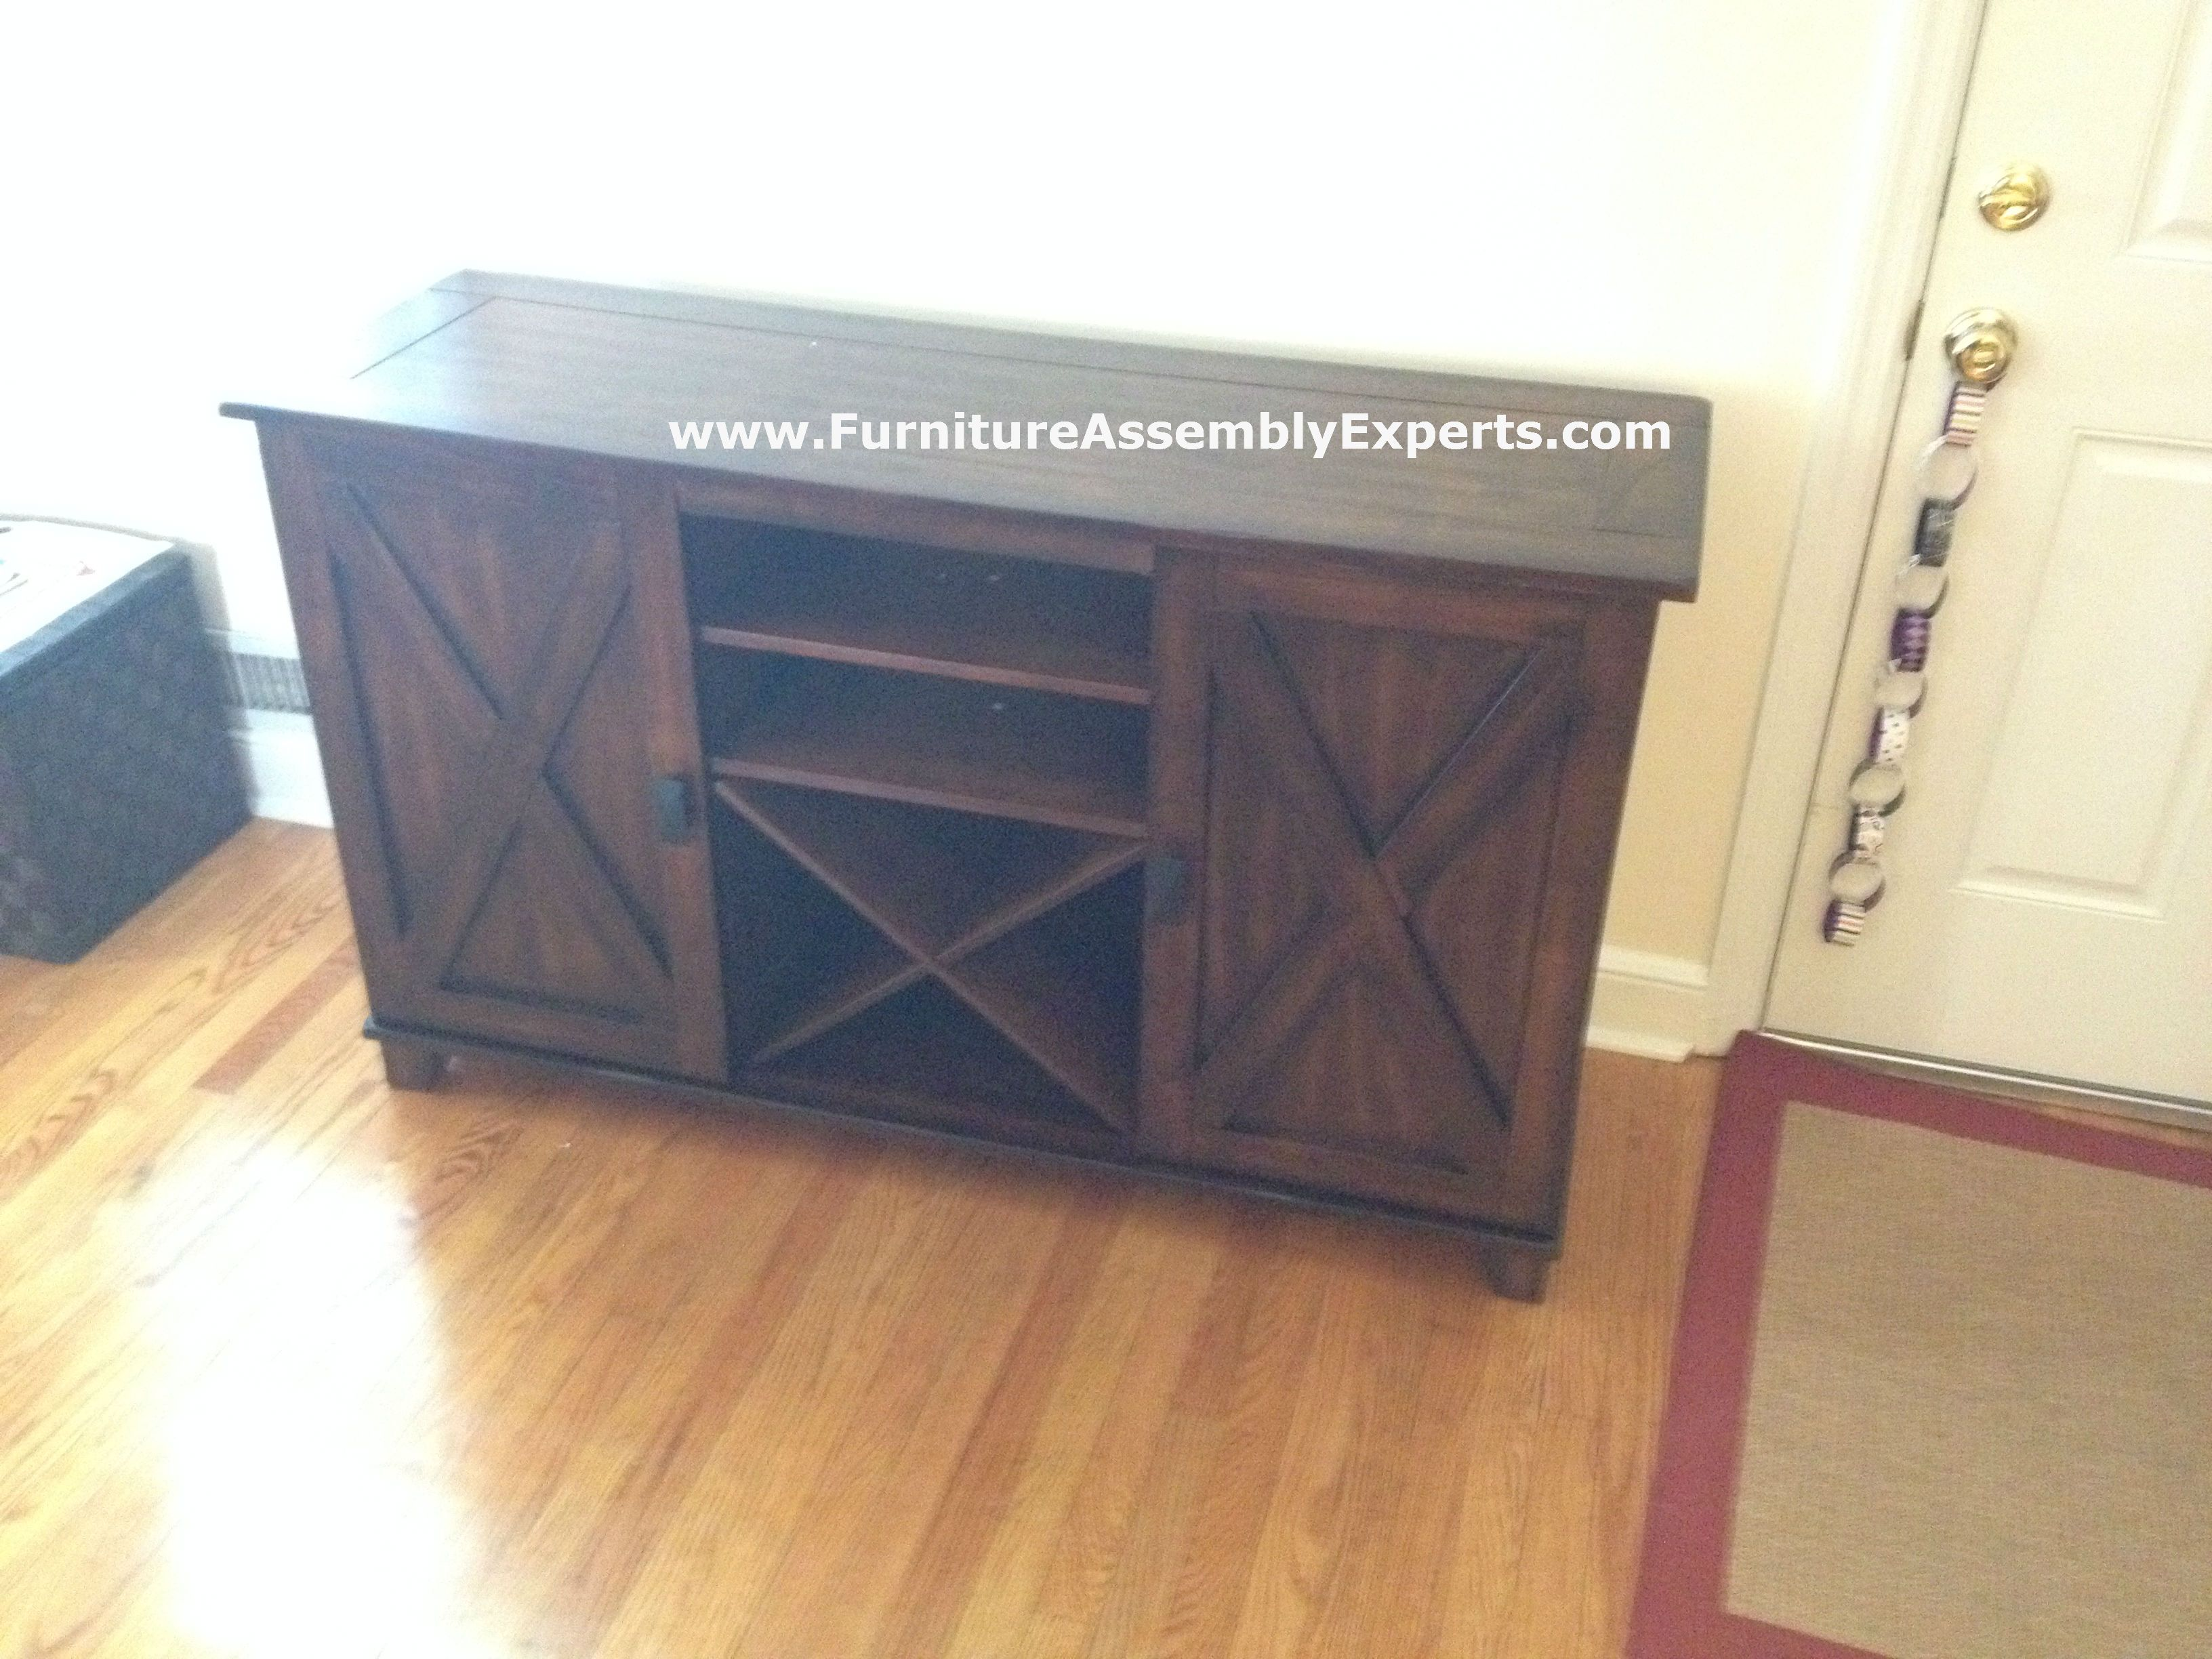 World Market Verona Buffet Tv Stand Assembled In Bethesda MD By Furniture Assembly Experts LLC